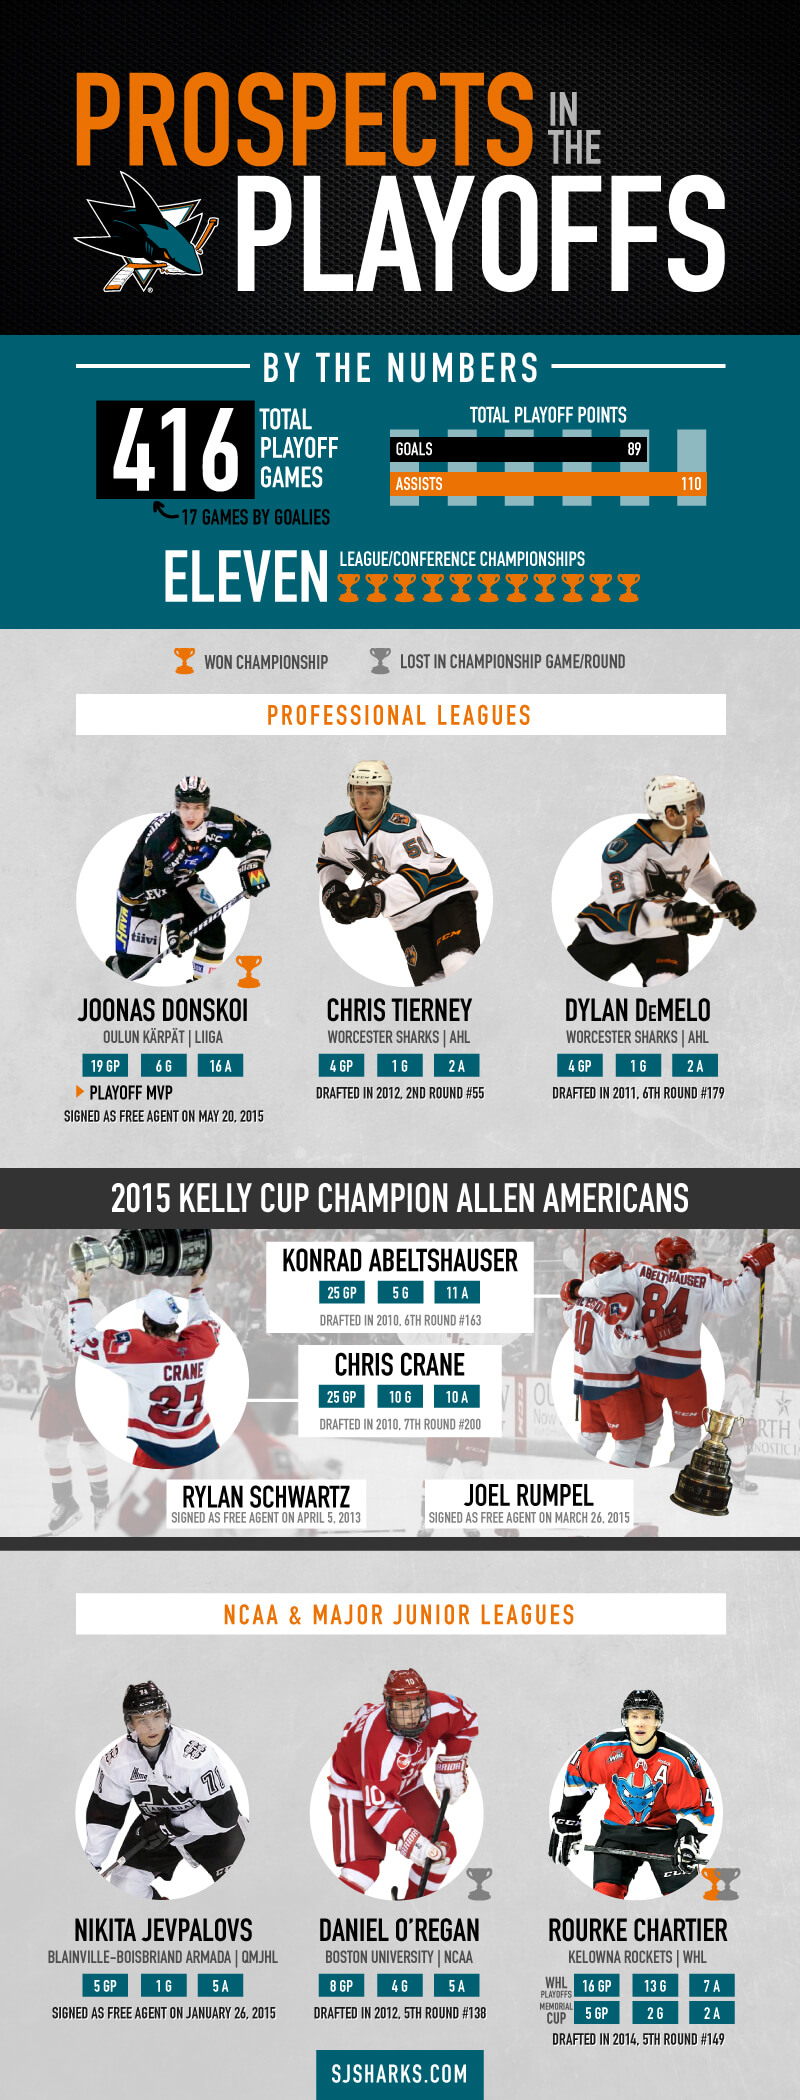 SJB_Infographic_PlayoffProspects.jpg